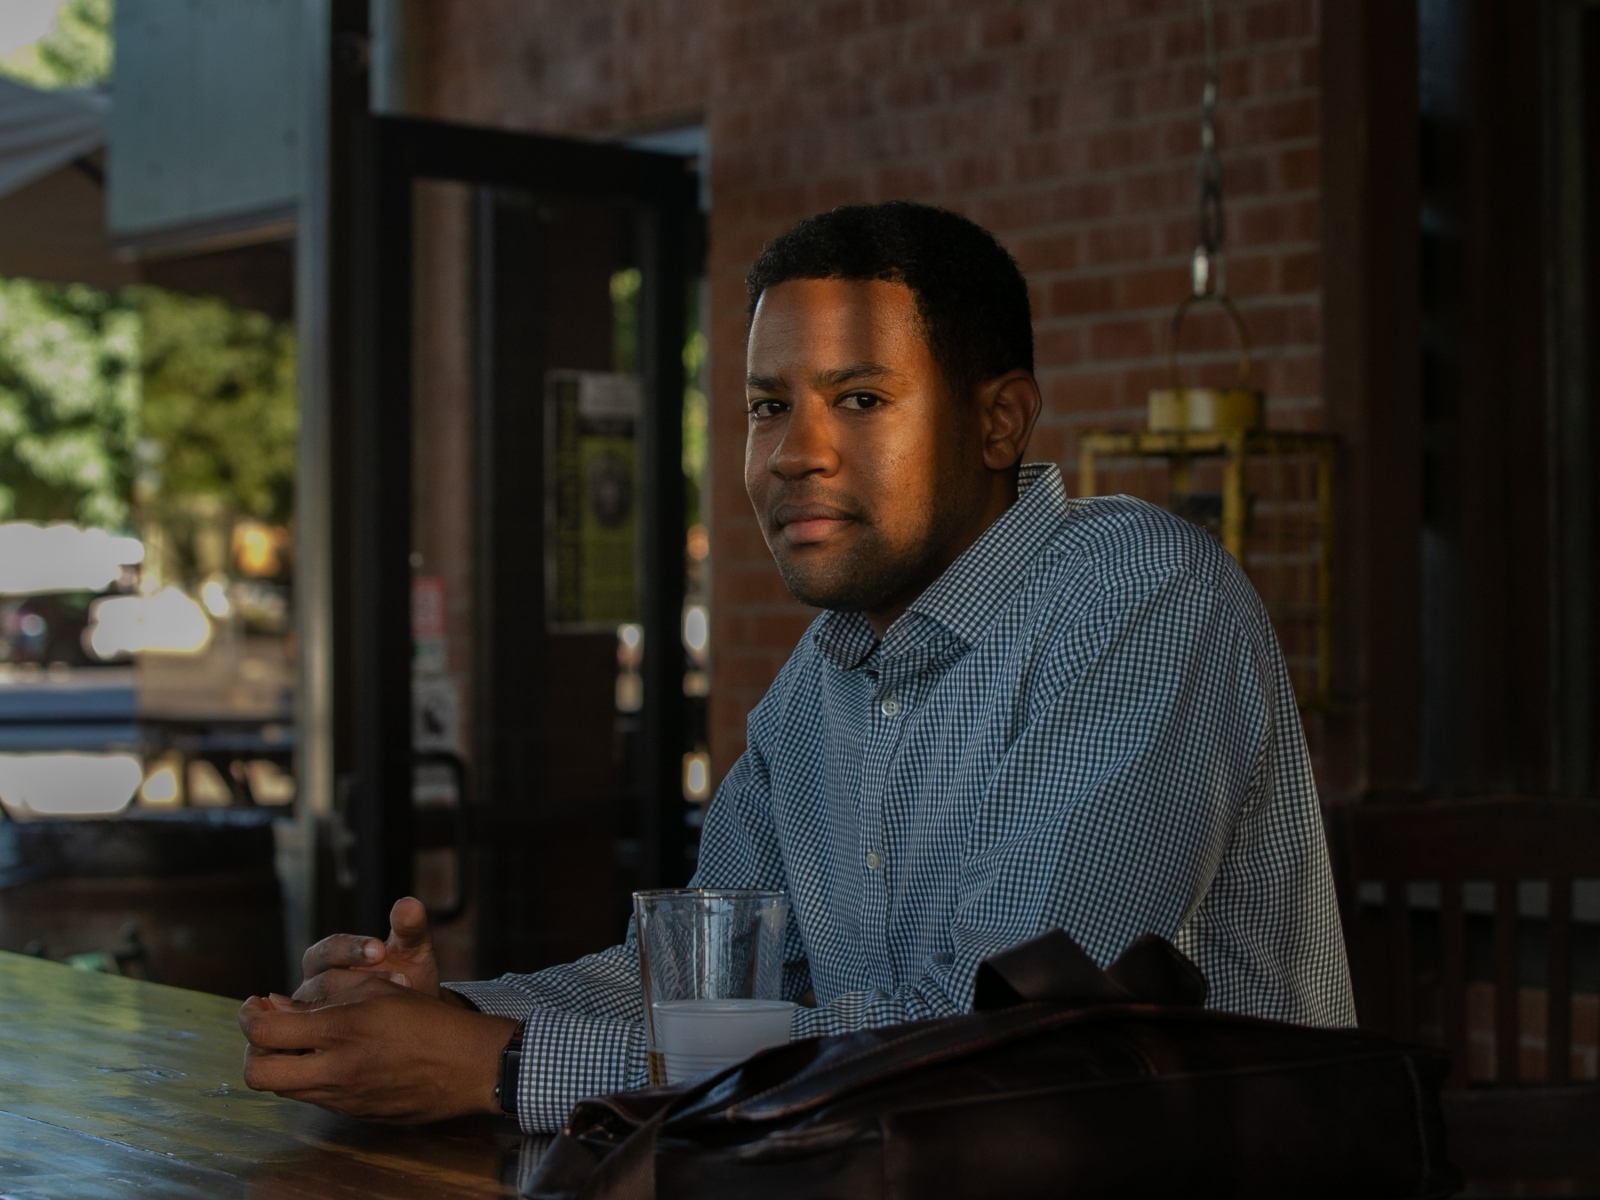 Downtown Phoenix resident Omar Peters enjoys a beer after work at The Grand Cafe in Phoenix, Ariz.